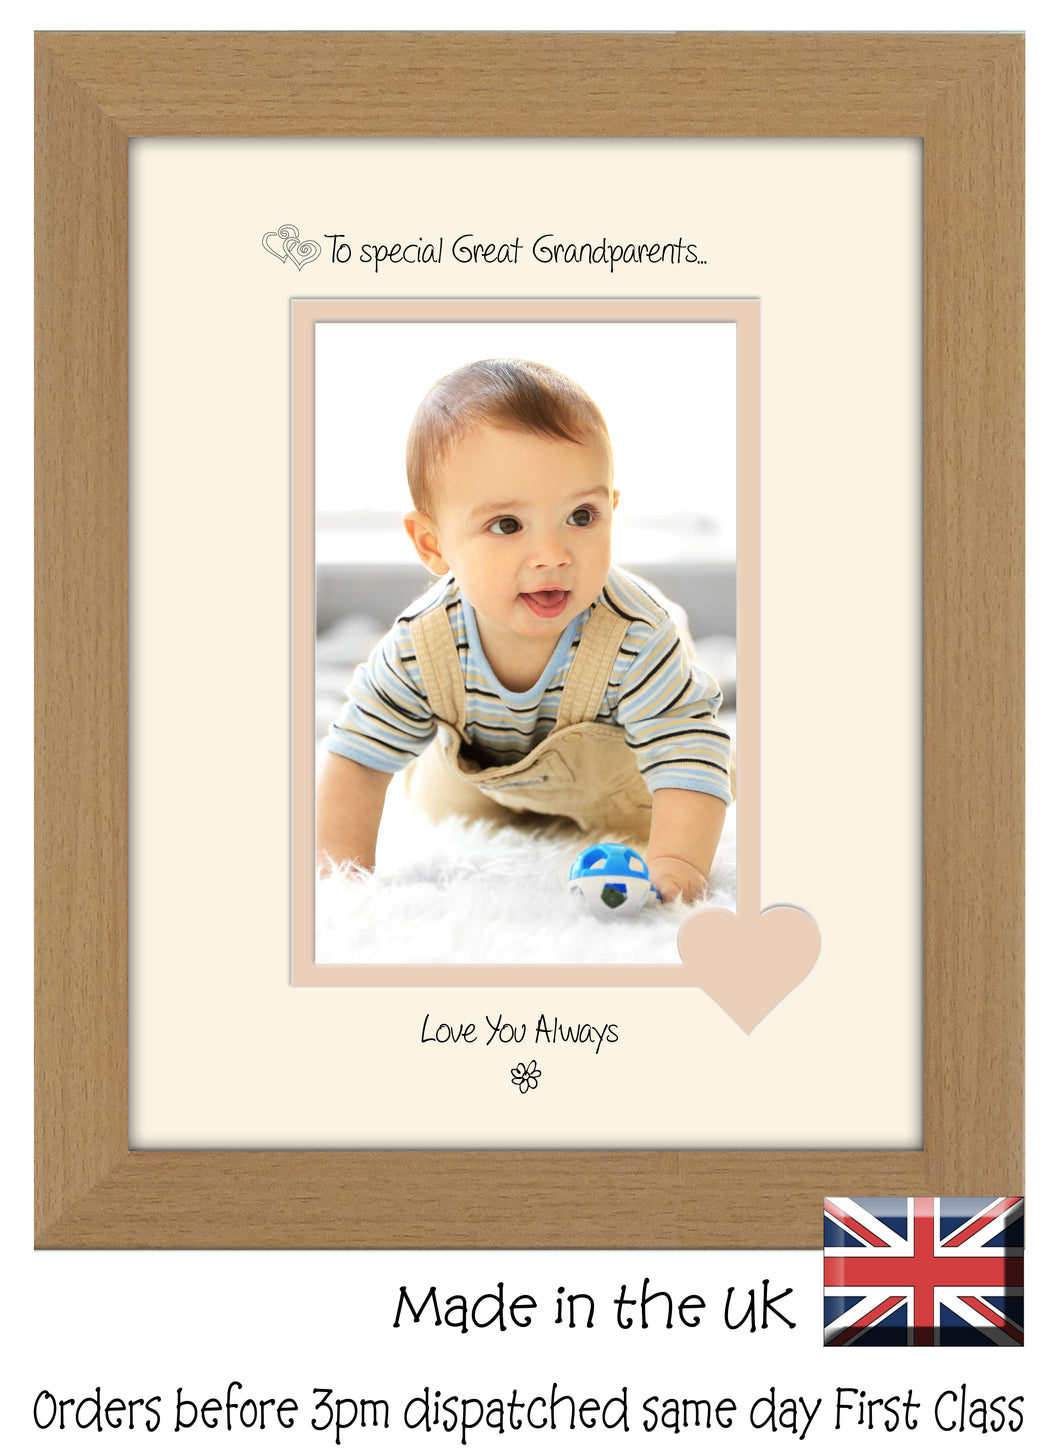 Great Grandparents Photo Frame - To a Special Great Grandparents ... Love you Always Portrait photo frame 6